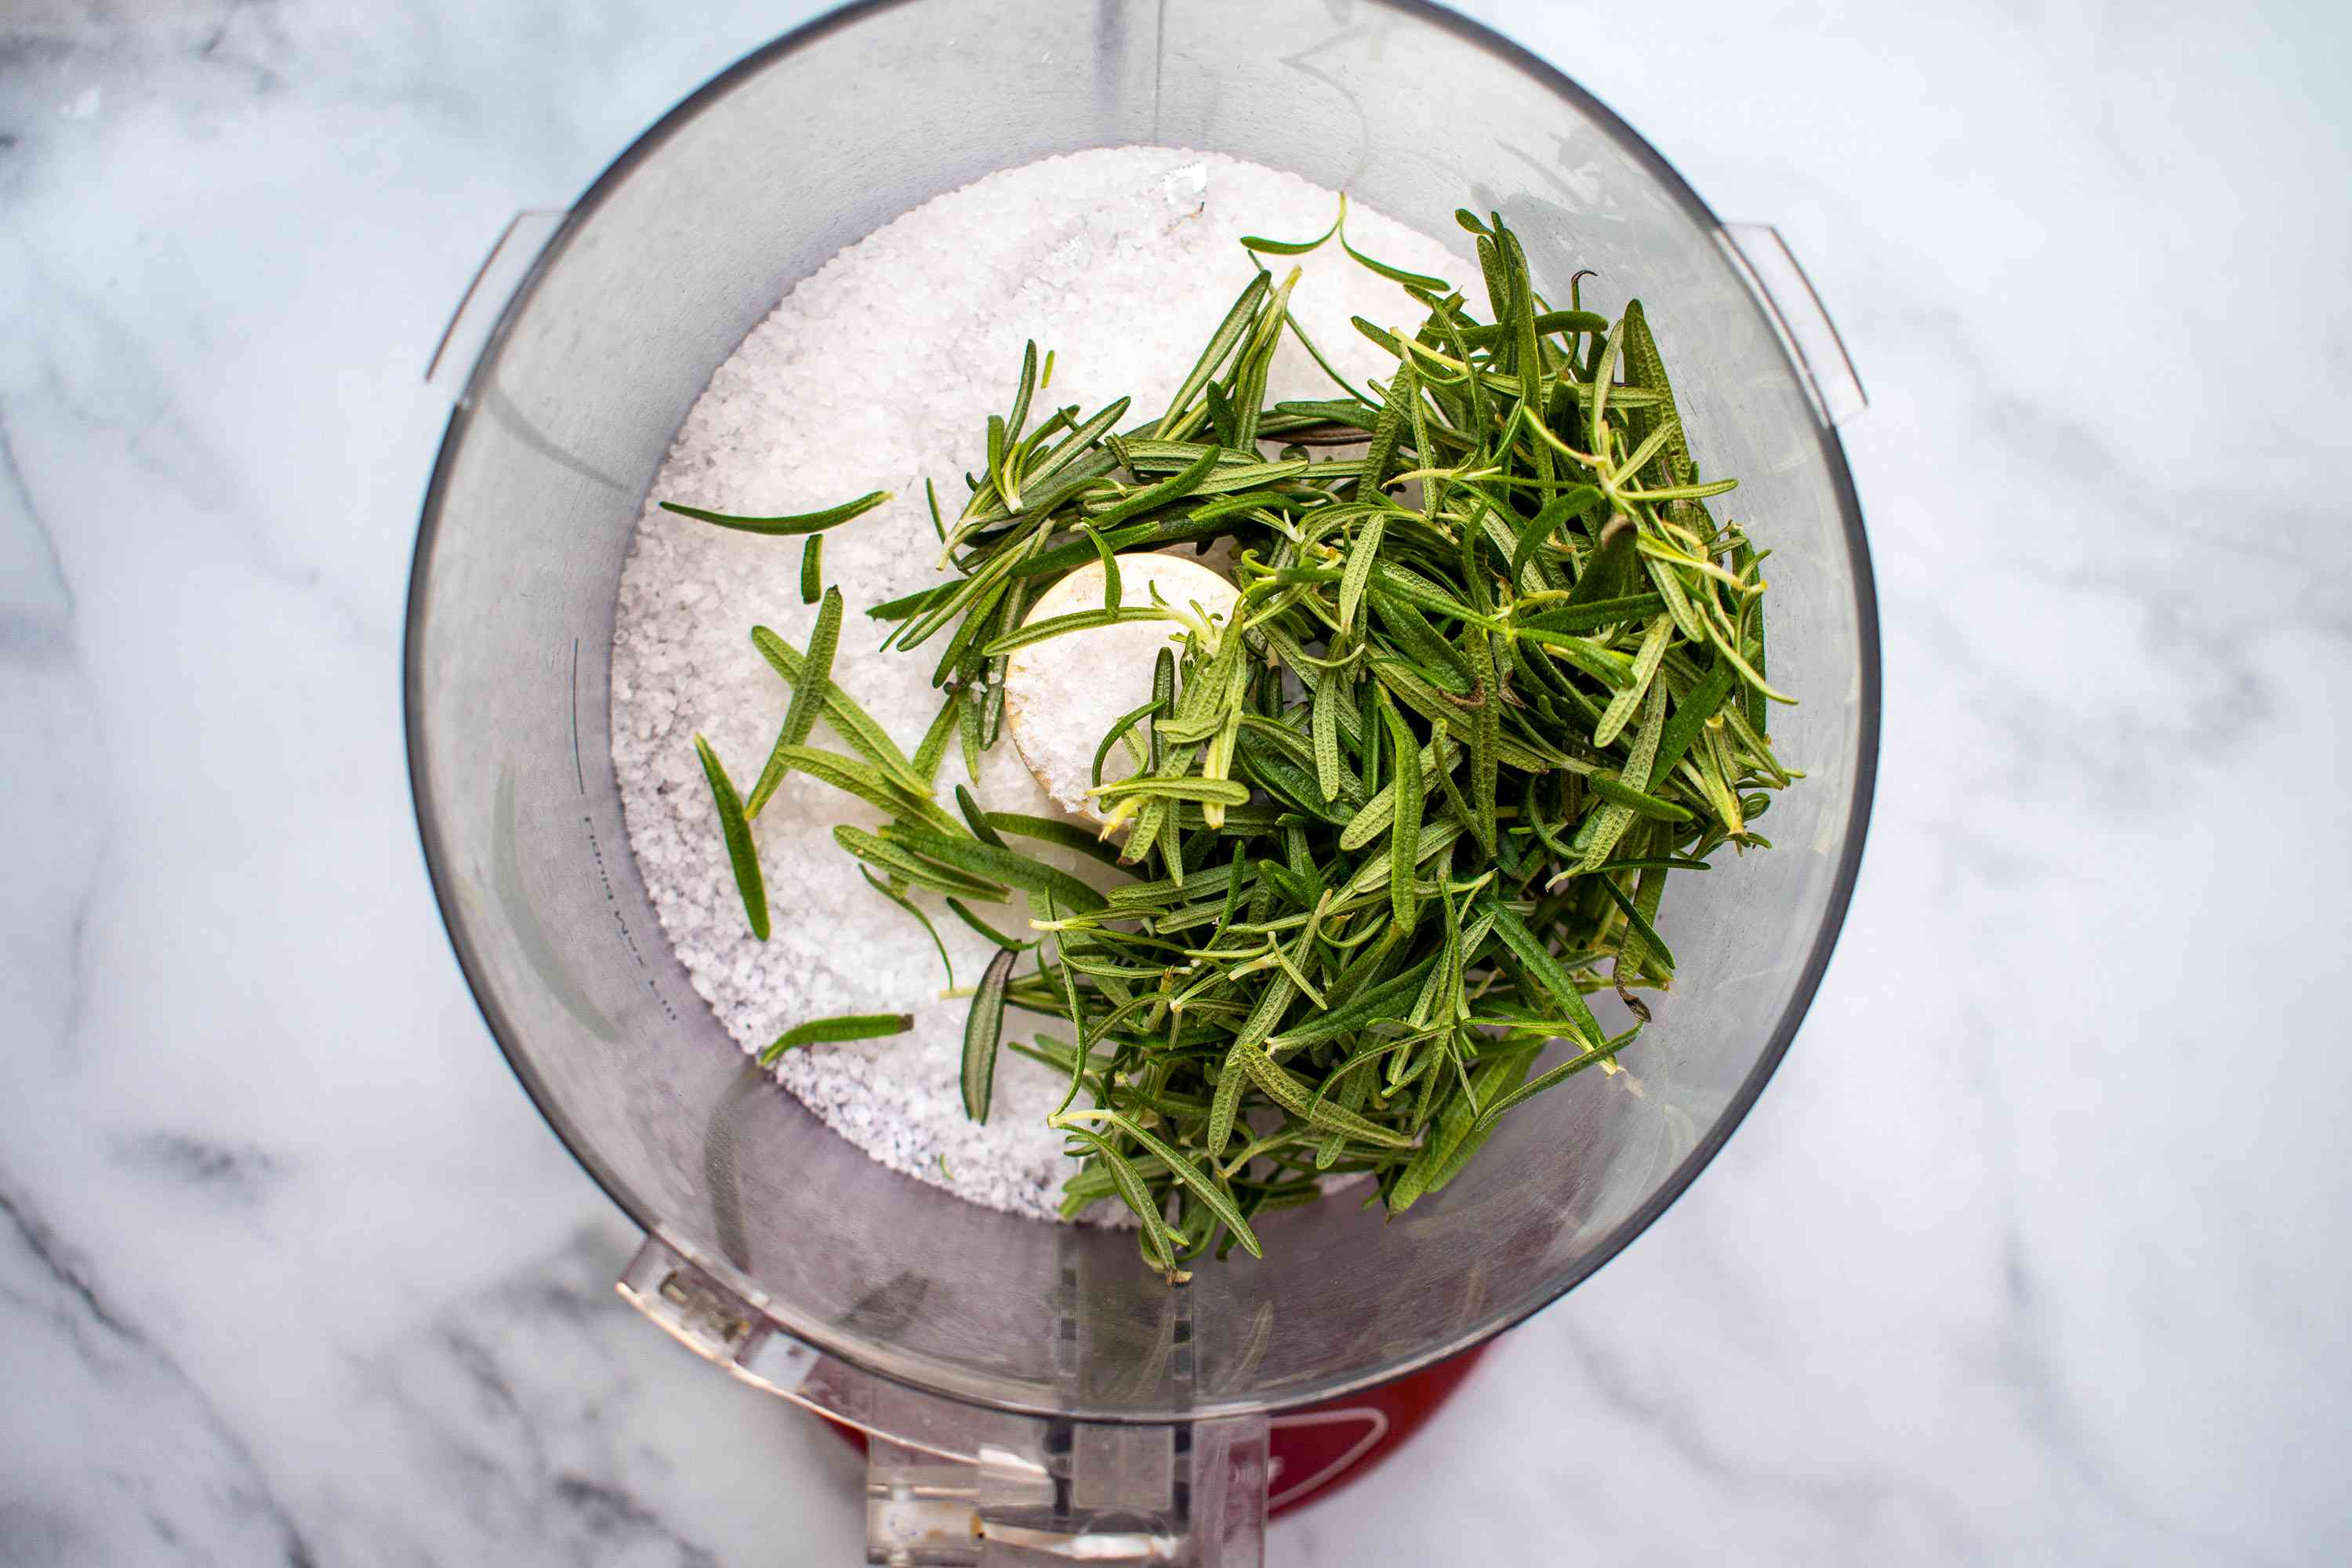 rosemary leaves and coarse salt in a food processor